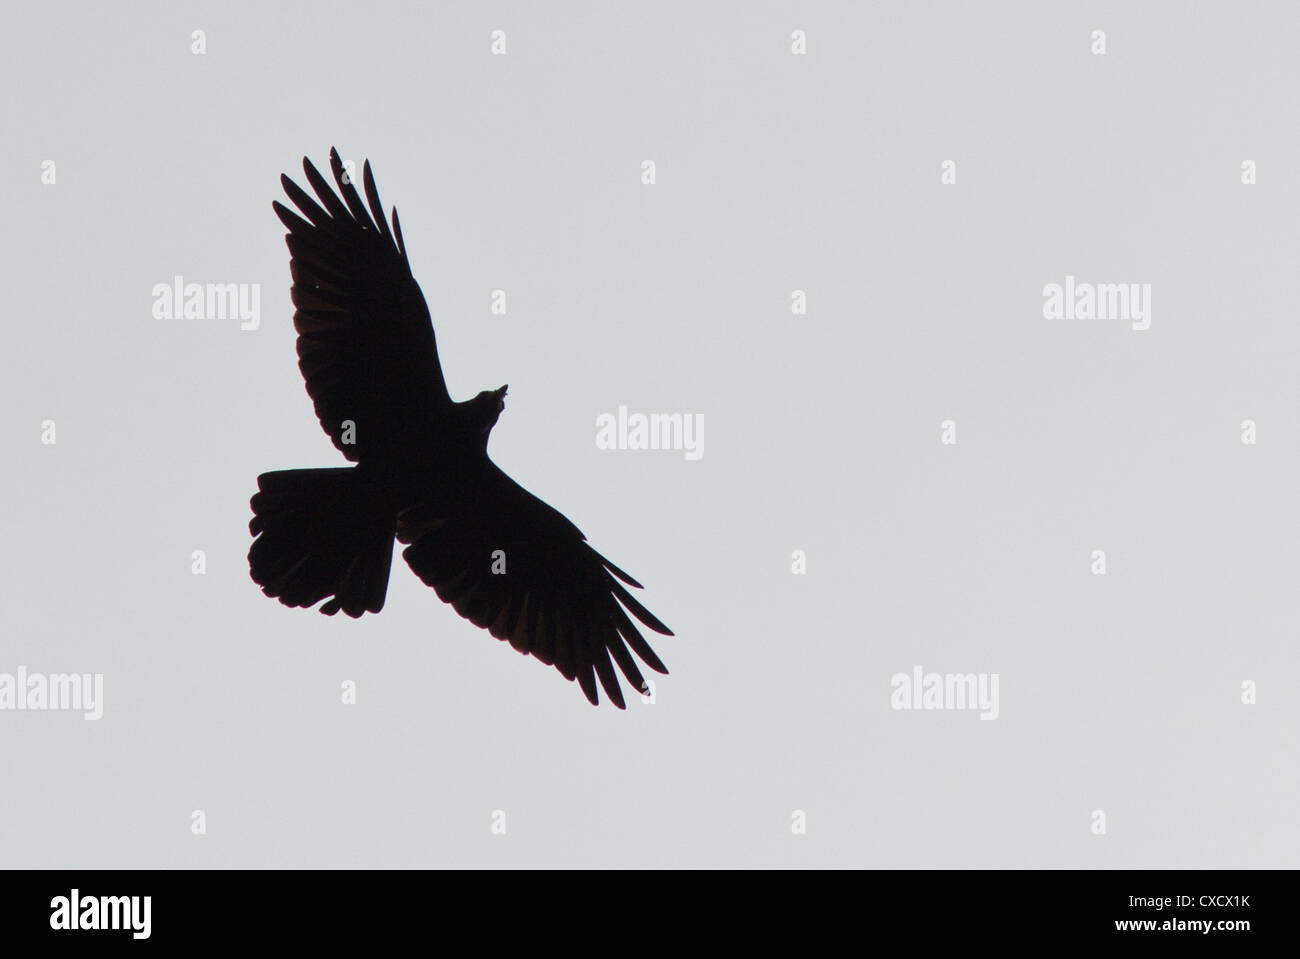 Raven Flying Stockfotos & Raven Flying Bilder - Alamy